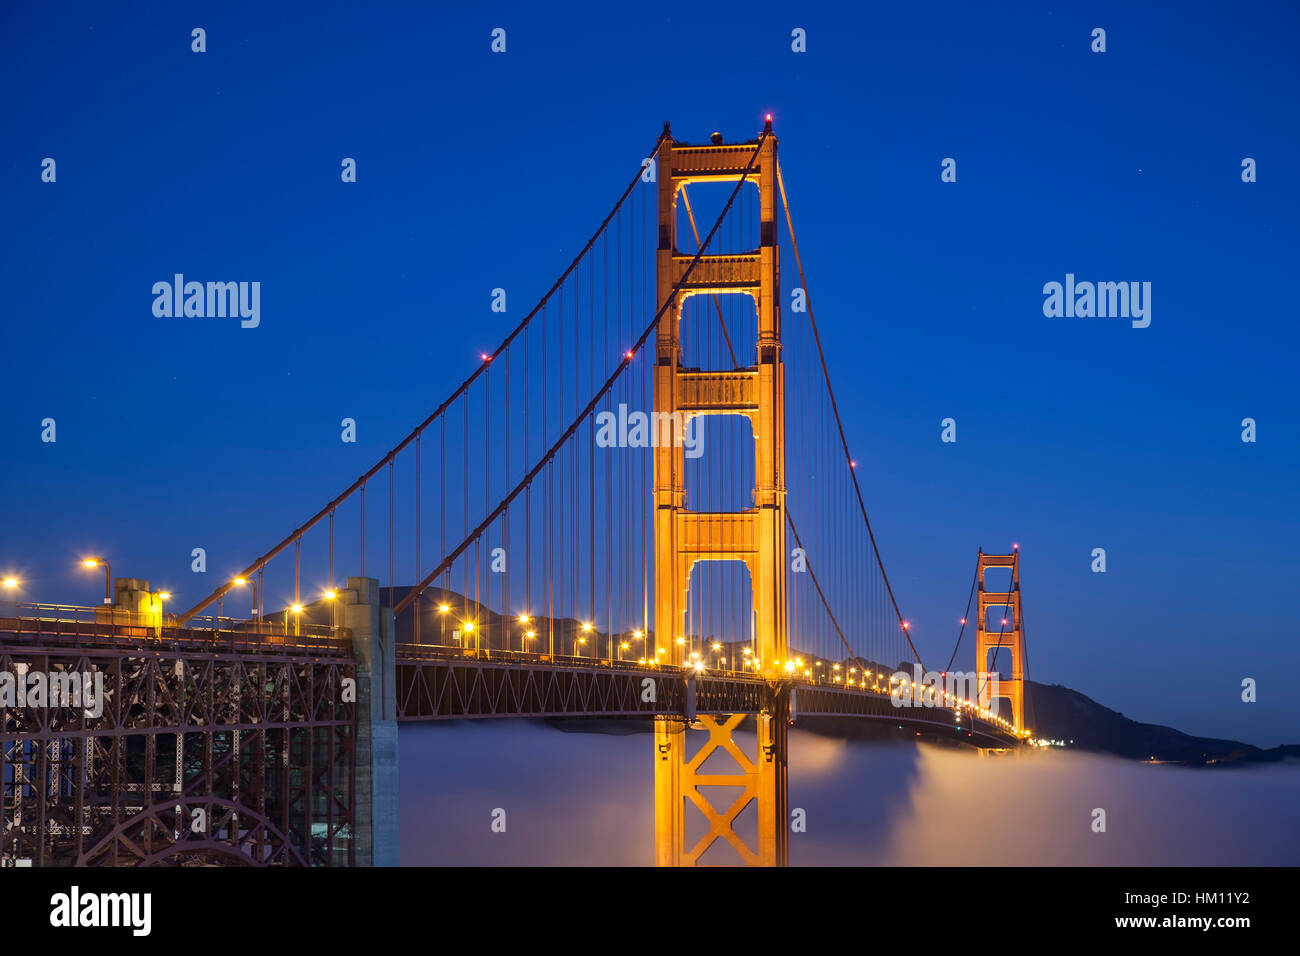 Golden Gate Bridge und Nebel, San Francisco, Kalifornien, USA Stockbild